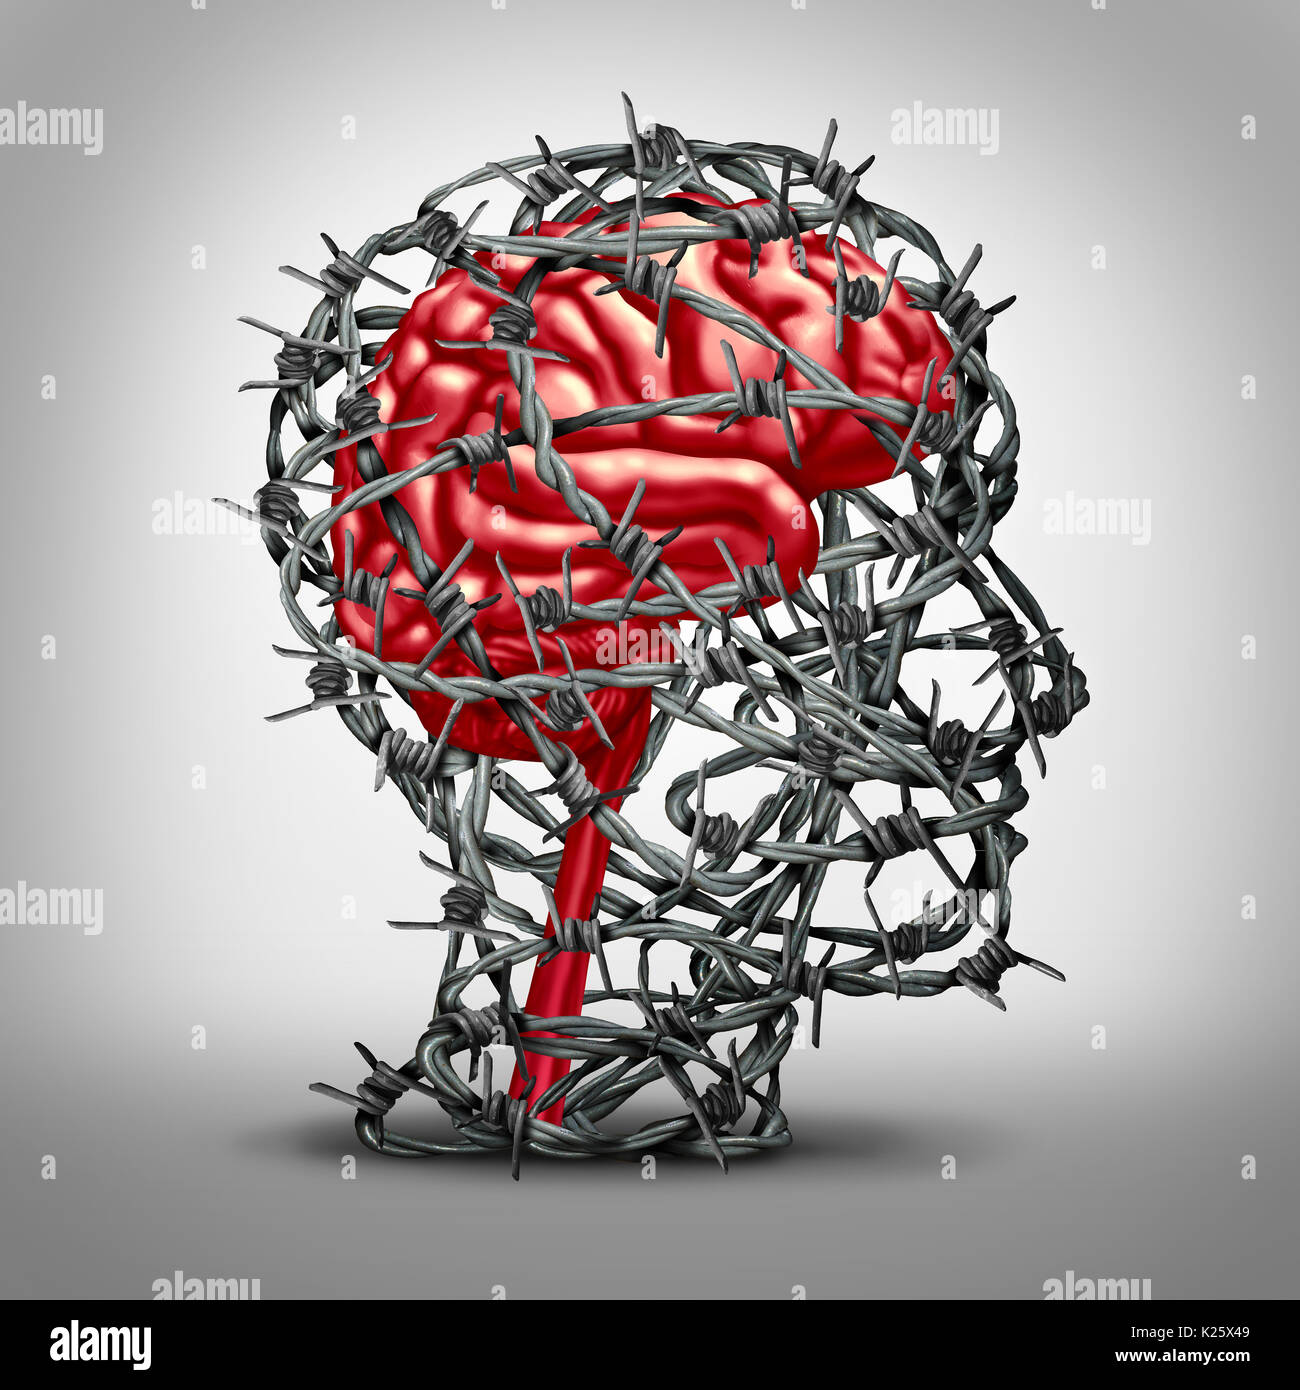 Brain protection concept and protecting the mind icon as a mental health medicine idea with a human thinking organ protected by barbed metal. - Stock Image